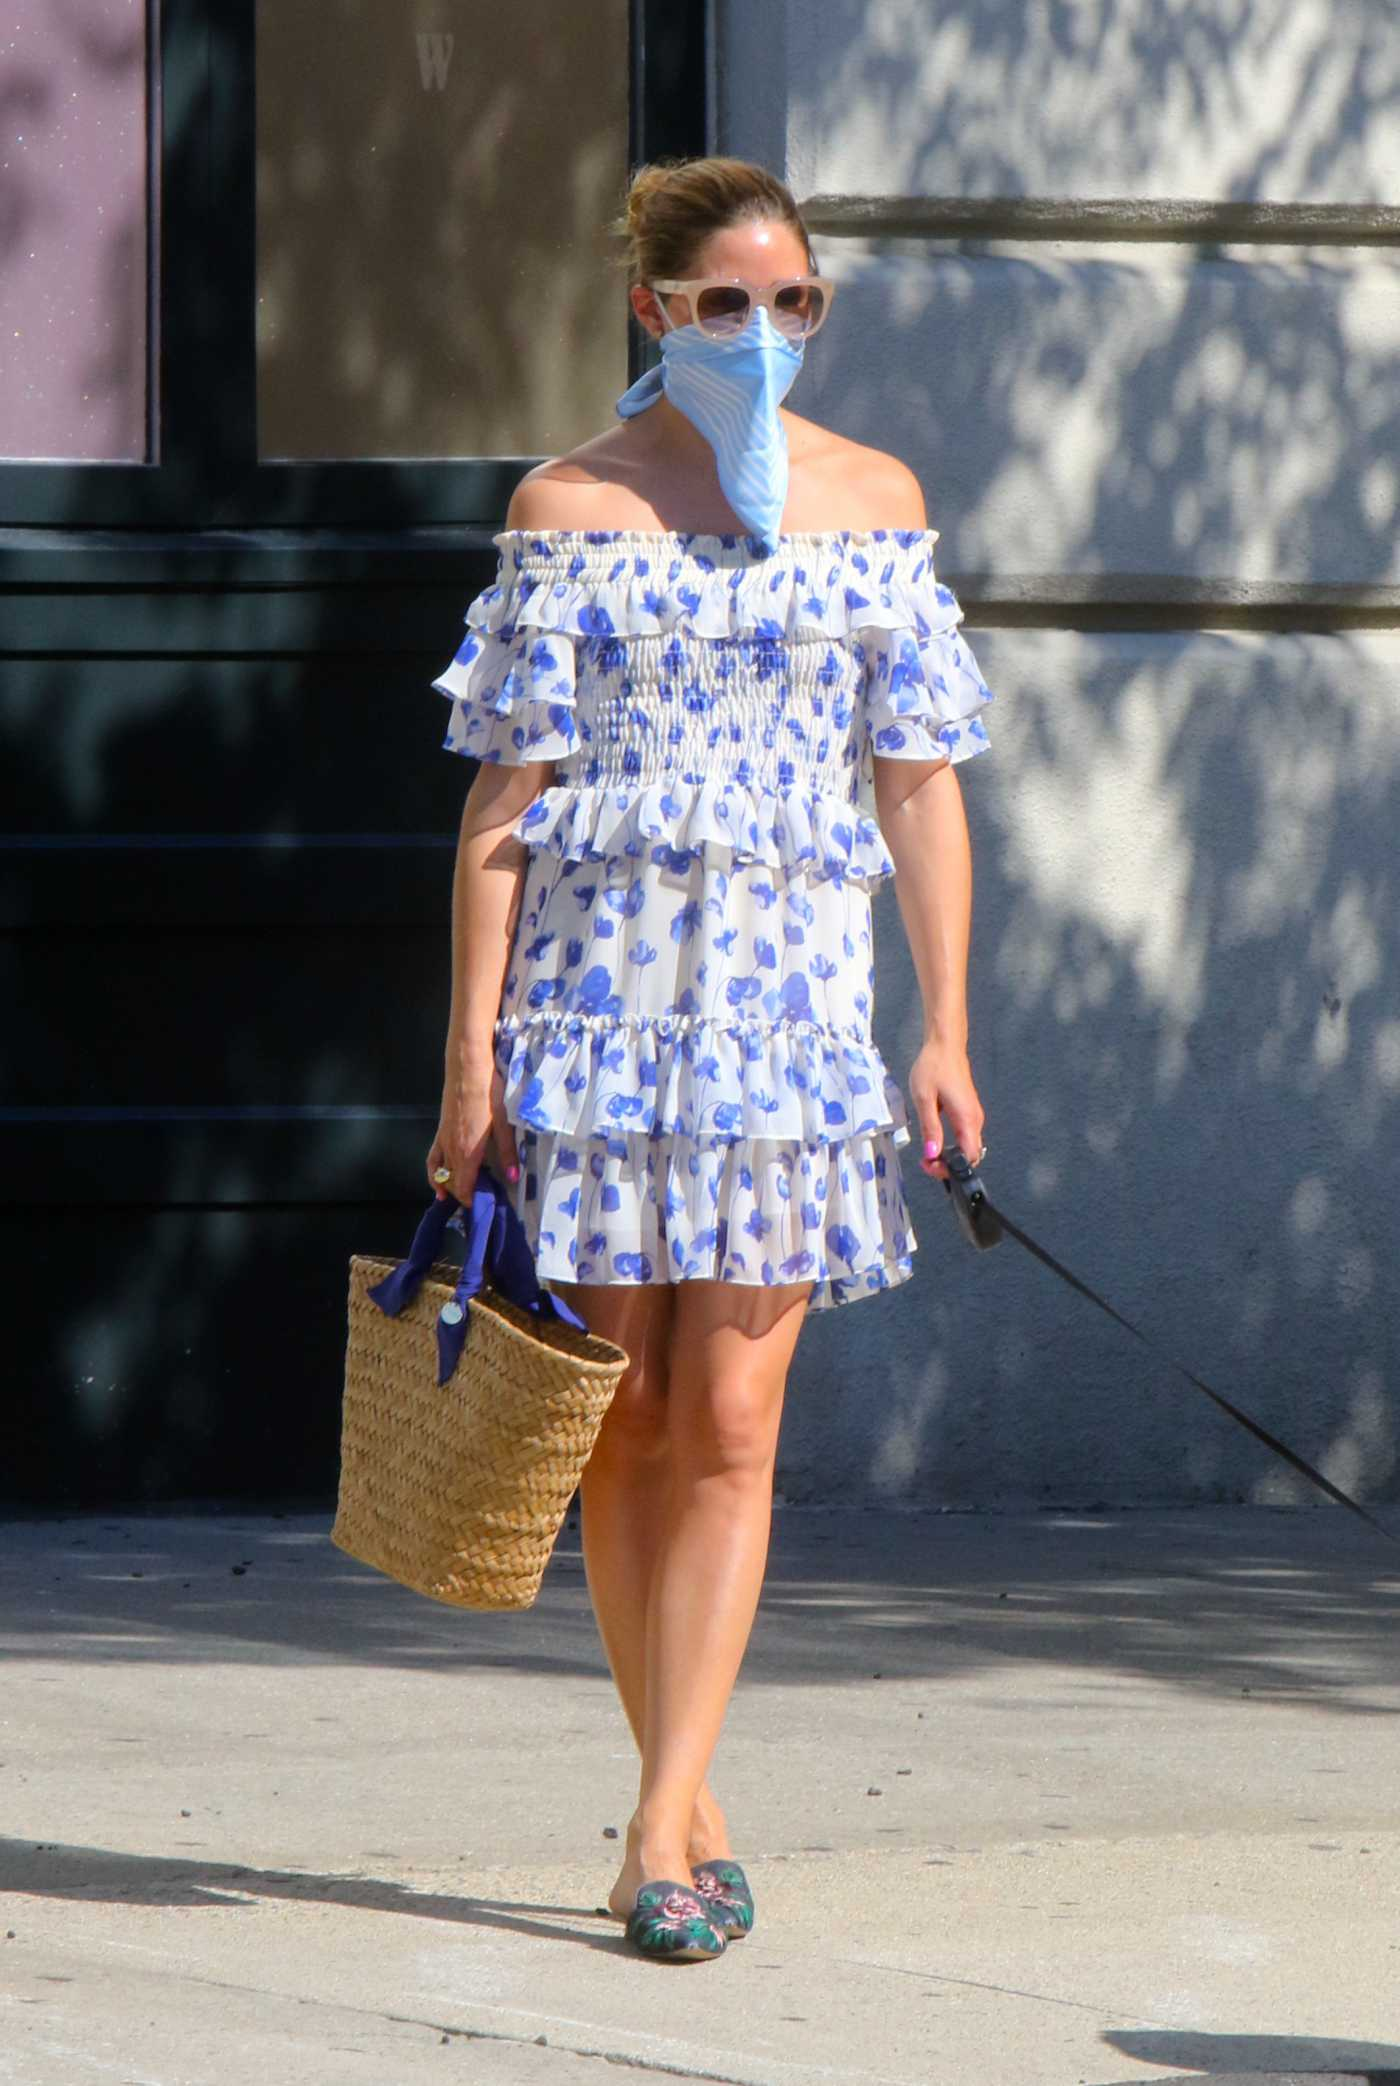 Olivia Palermo in a White and Blue Summer Dress Walks Her Dog Mr Butler in Dumbo, Brooklyn 07/30/2020